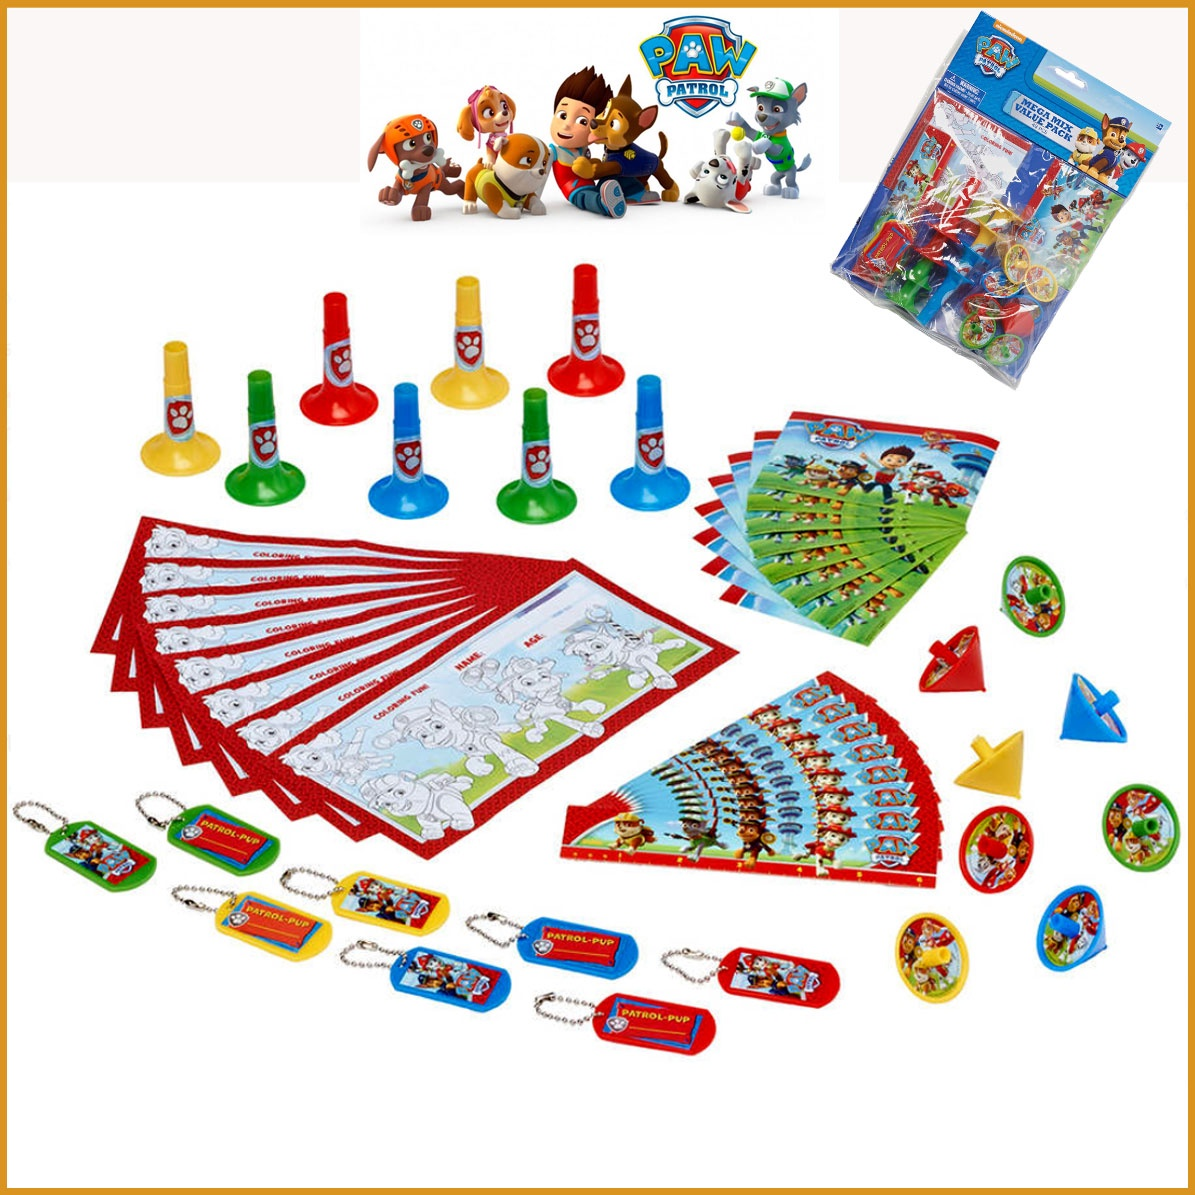 PAW PATROL MEGA MIX VALUE PACK 48 PCS